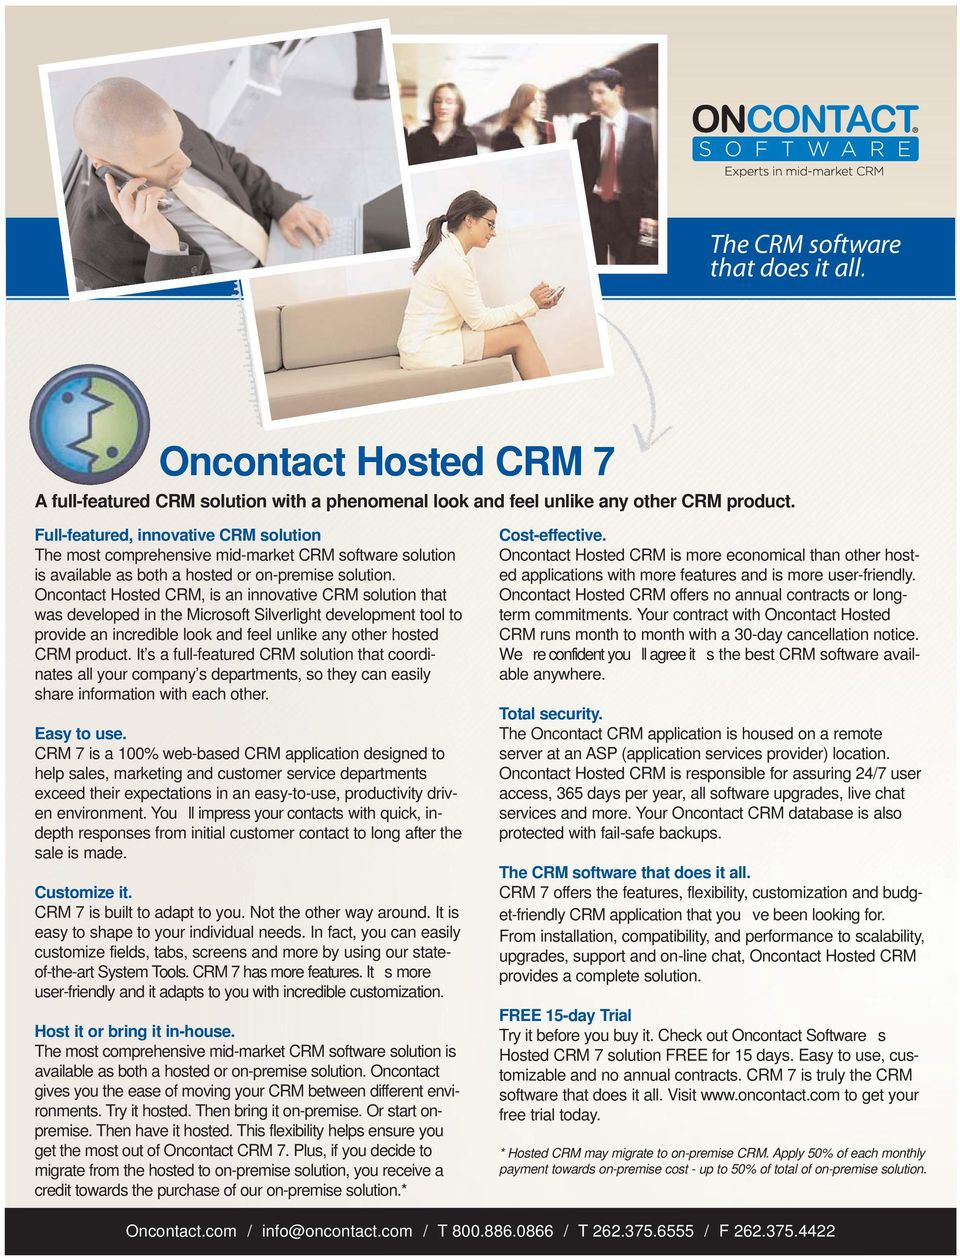 Oncontact Hosted CRM, is an innovative CRM solution that was developed in the Microsoft Silverlight development tool to provide an incredible look and feel unlike any other hosted CRM product.